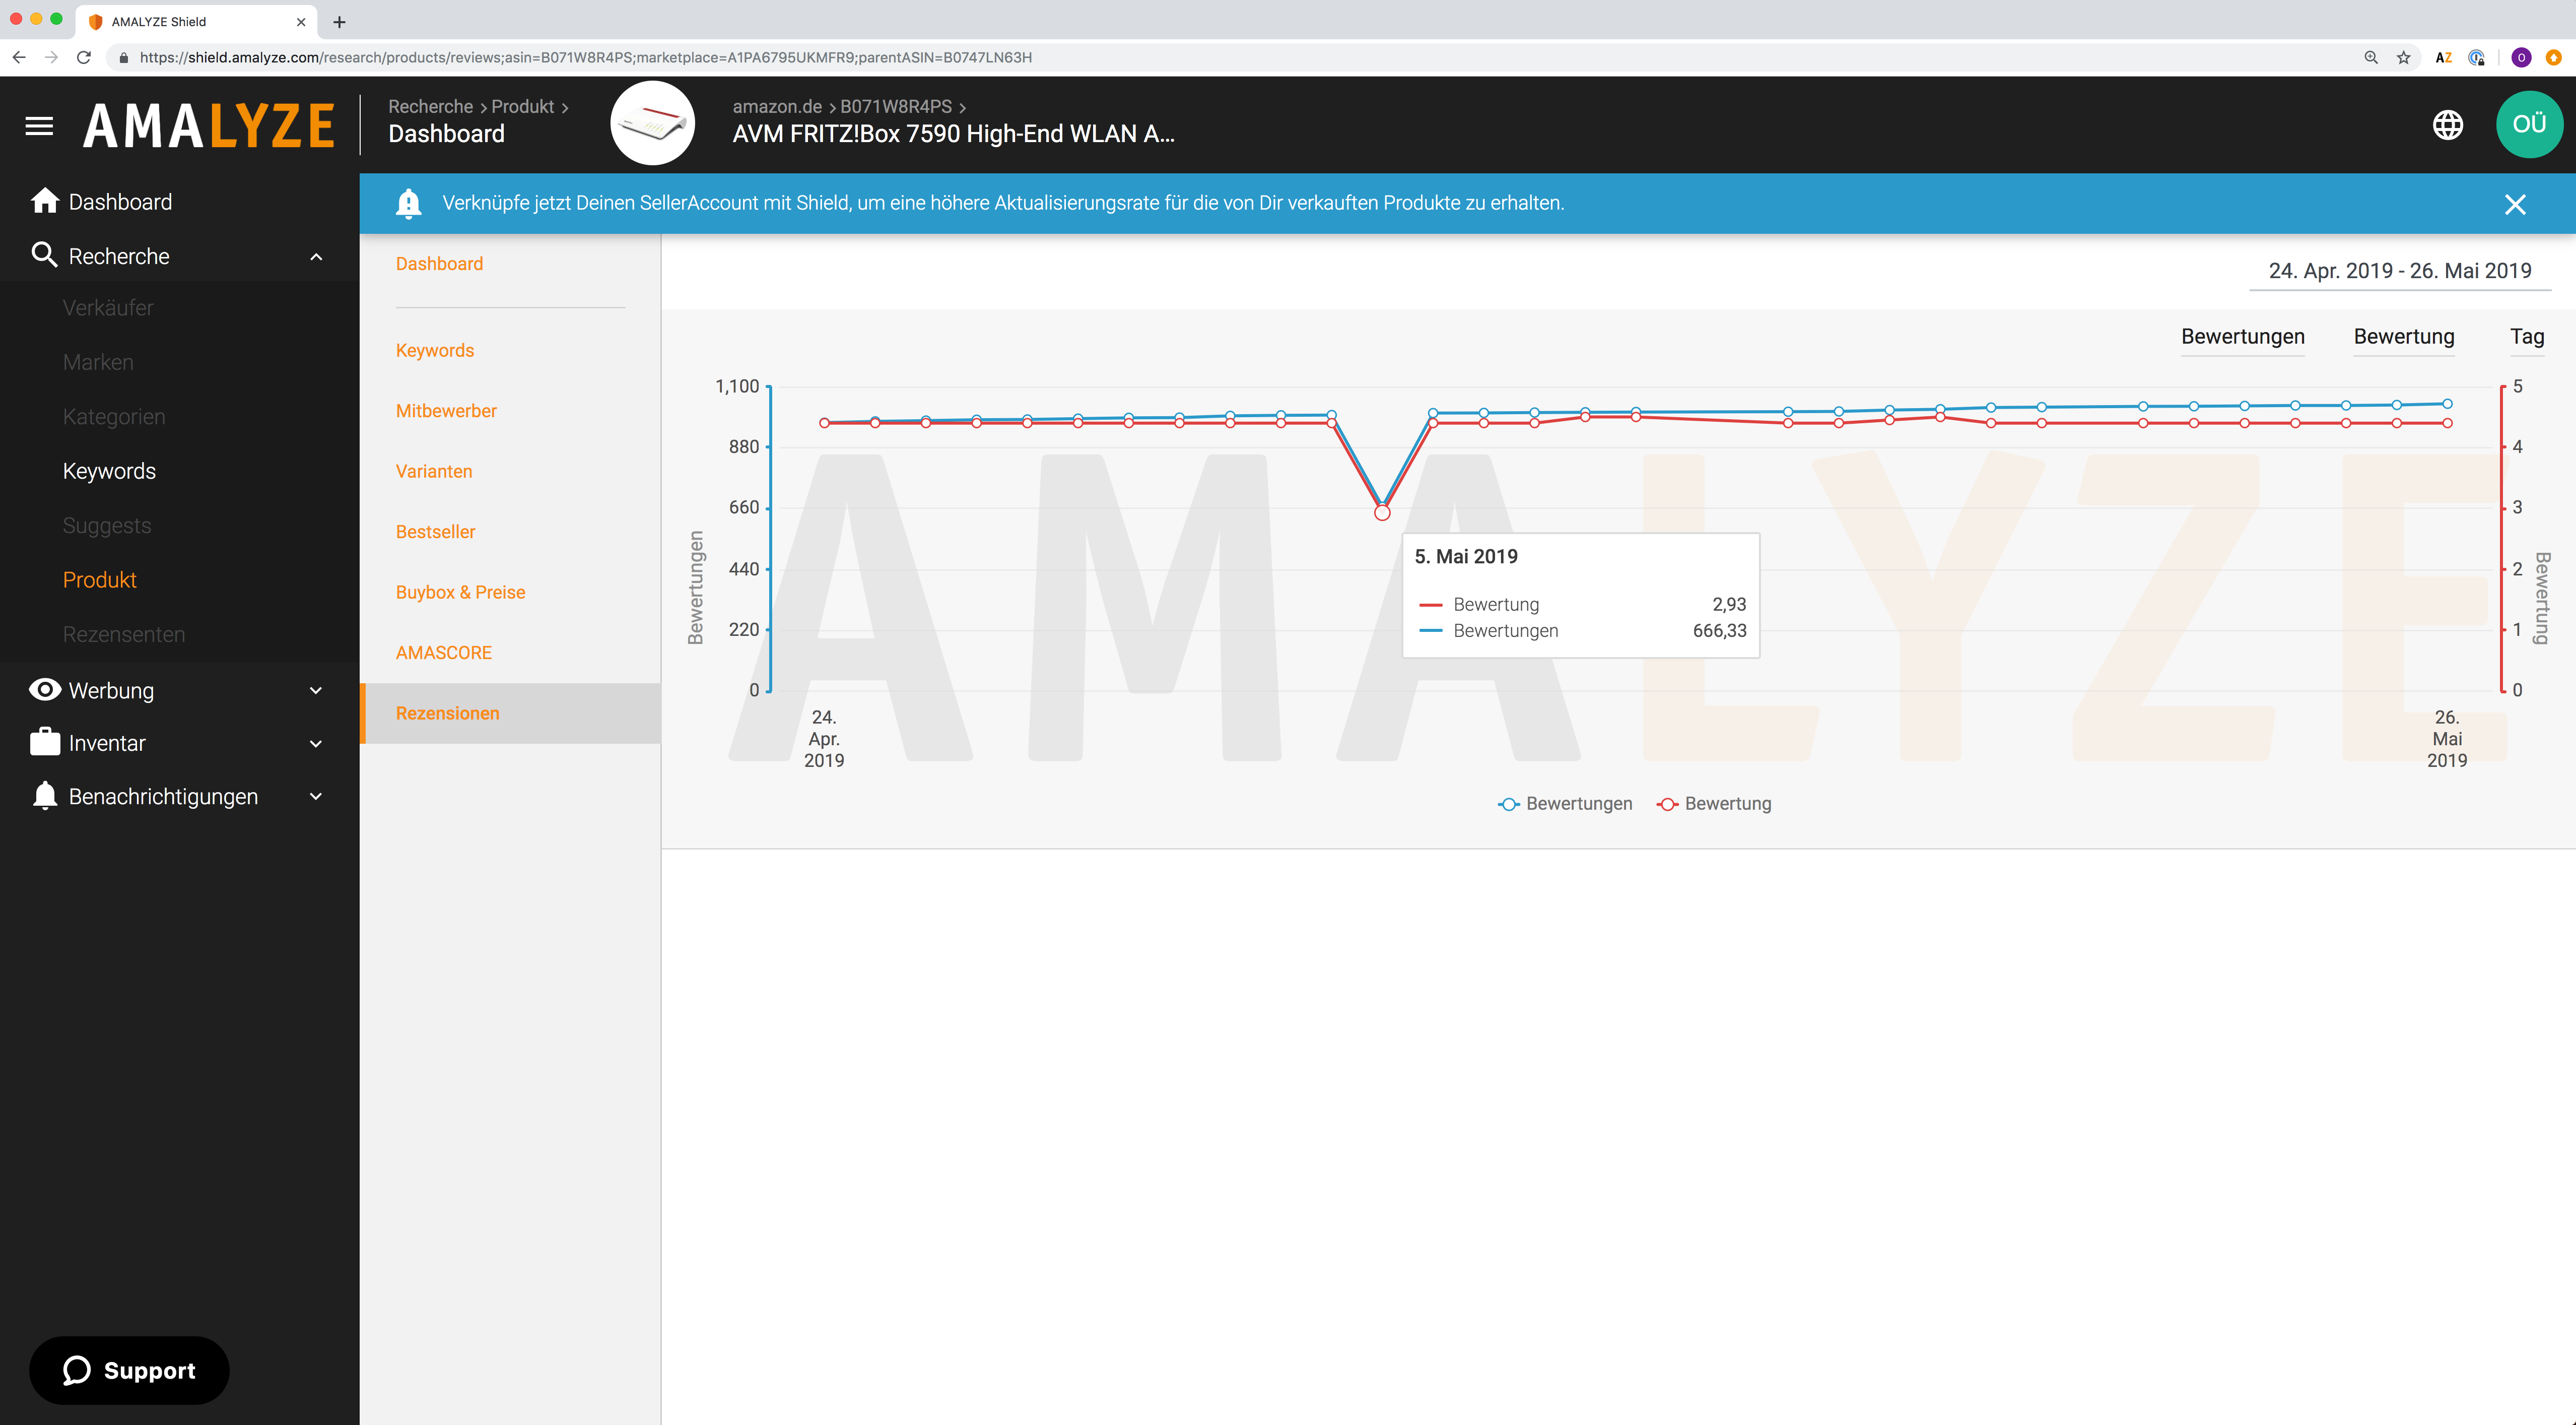 Amazon Tool AMALYZE_Review development and ratings make visible